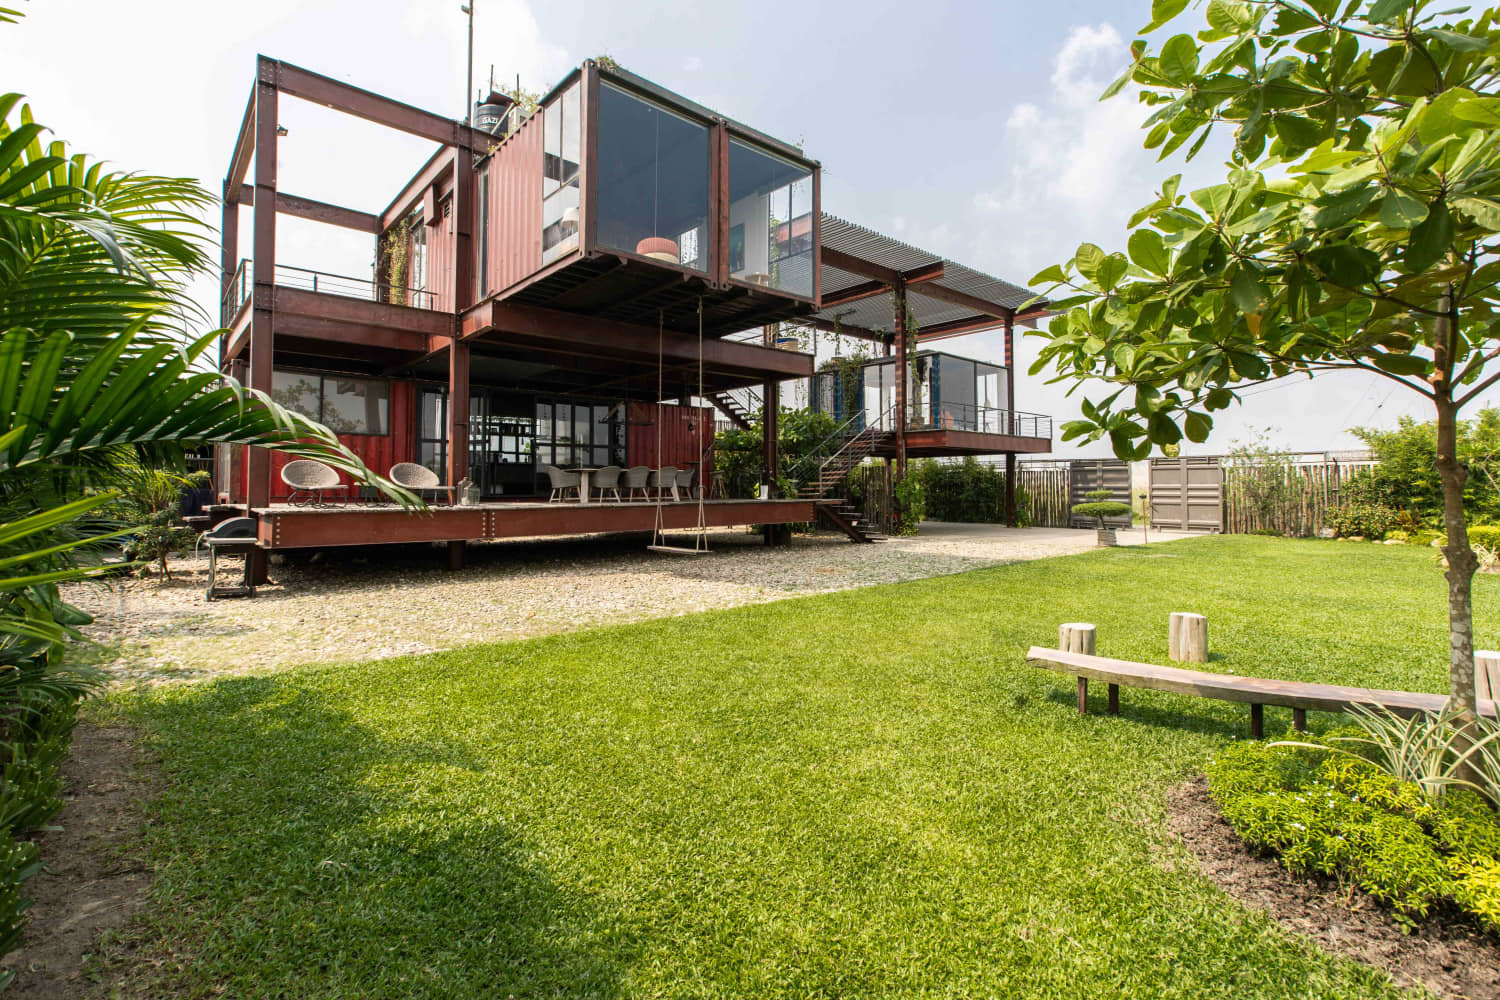 This Stacked Shipping Container House Is Stunning